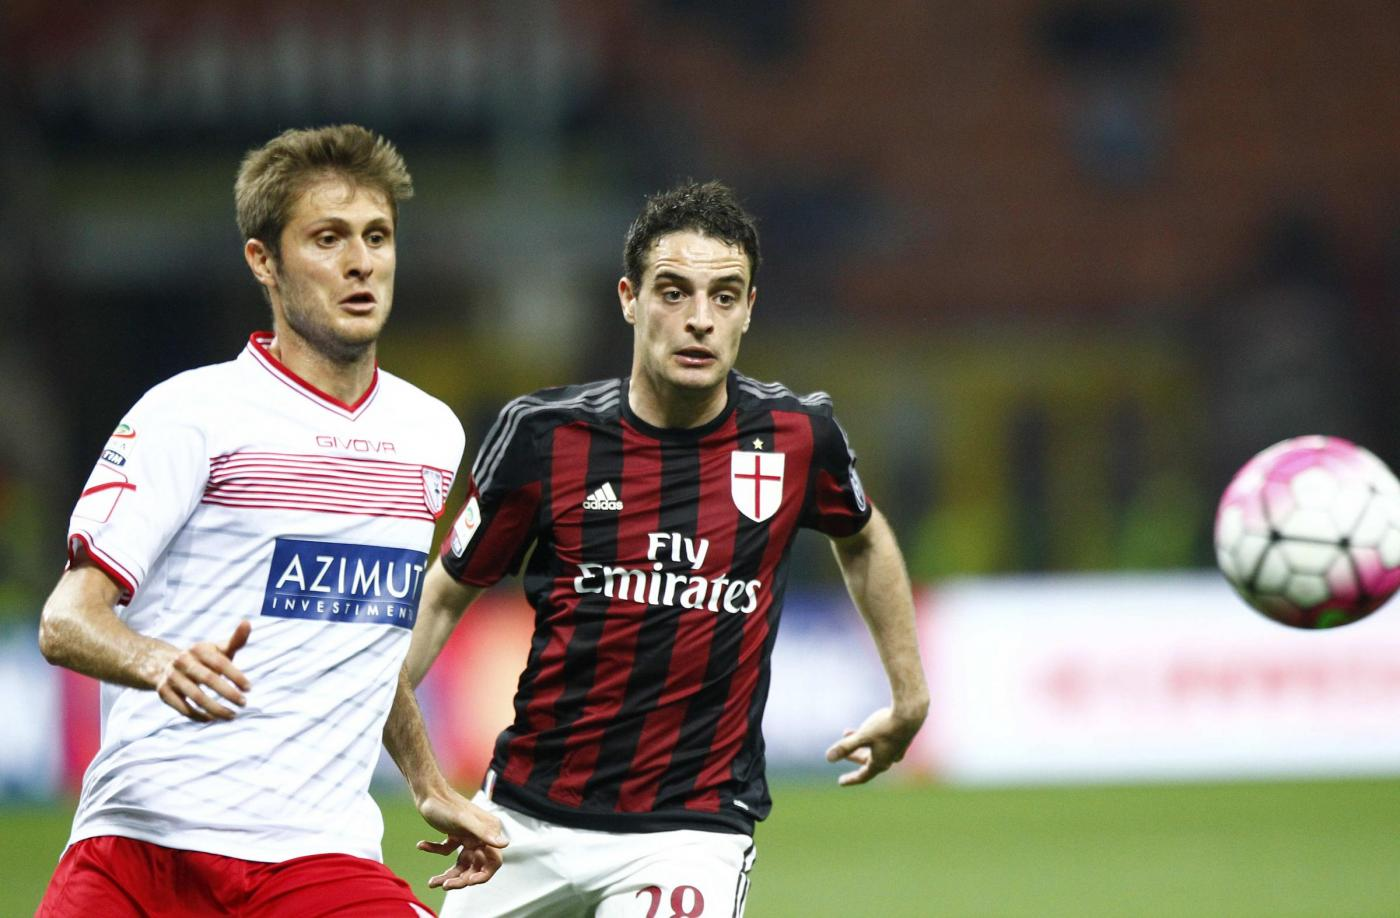 Highlights Verona-Milan 2-1: Video Gol e Sintesi (Serie A 2015-16)